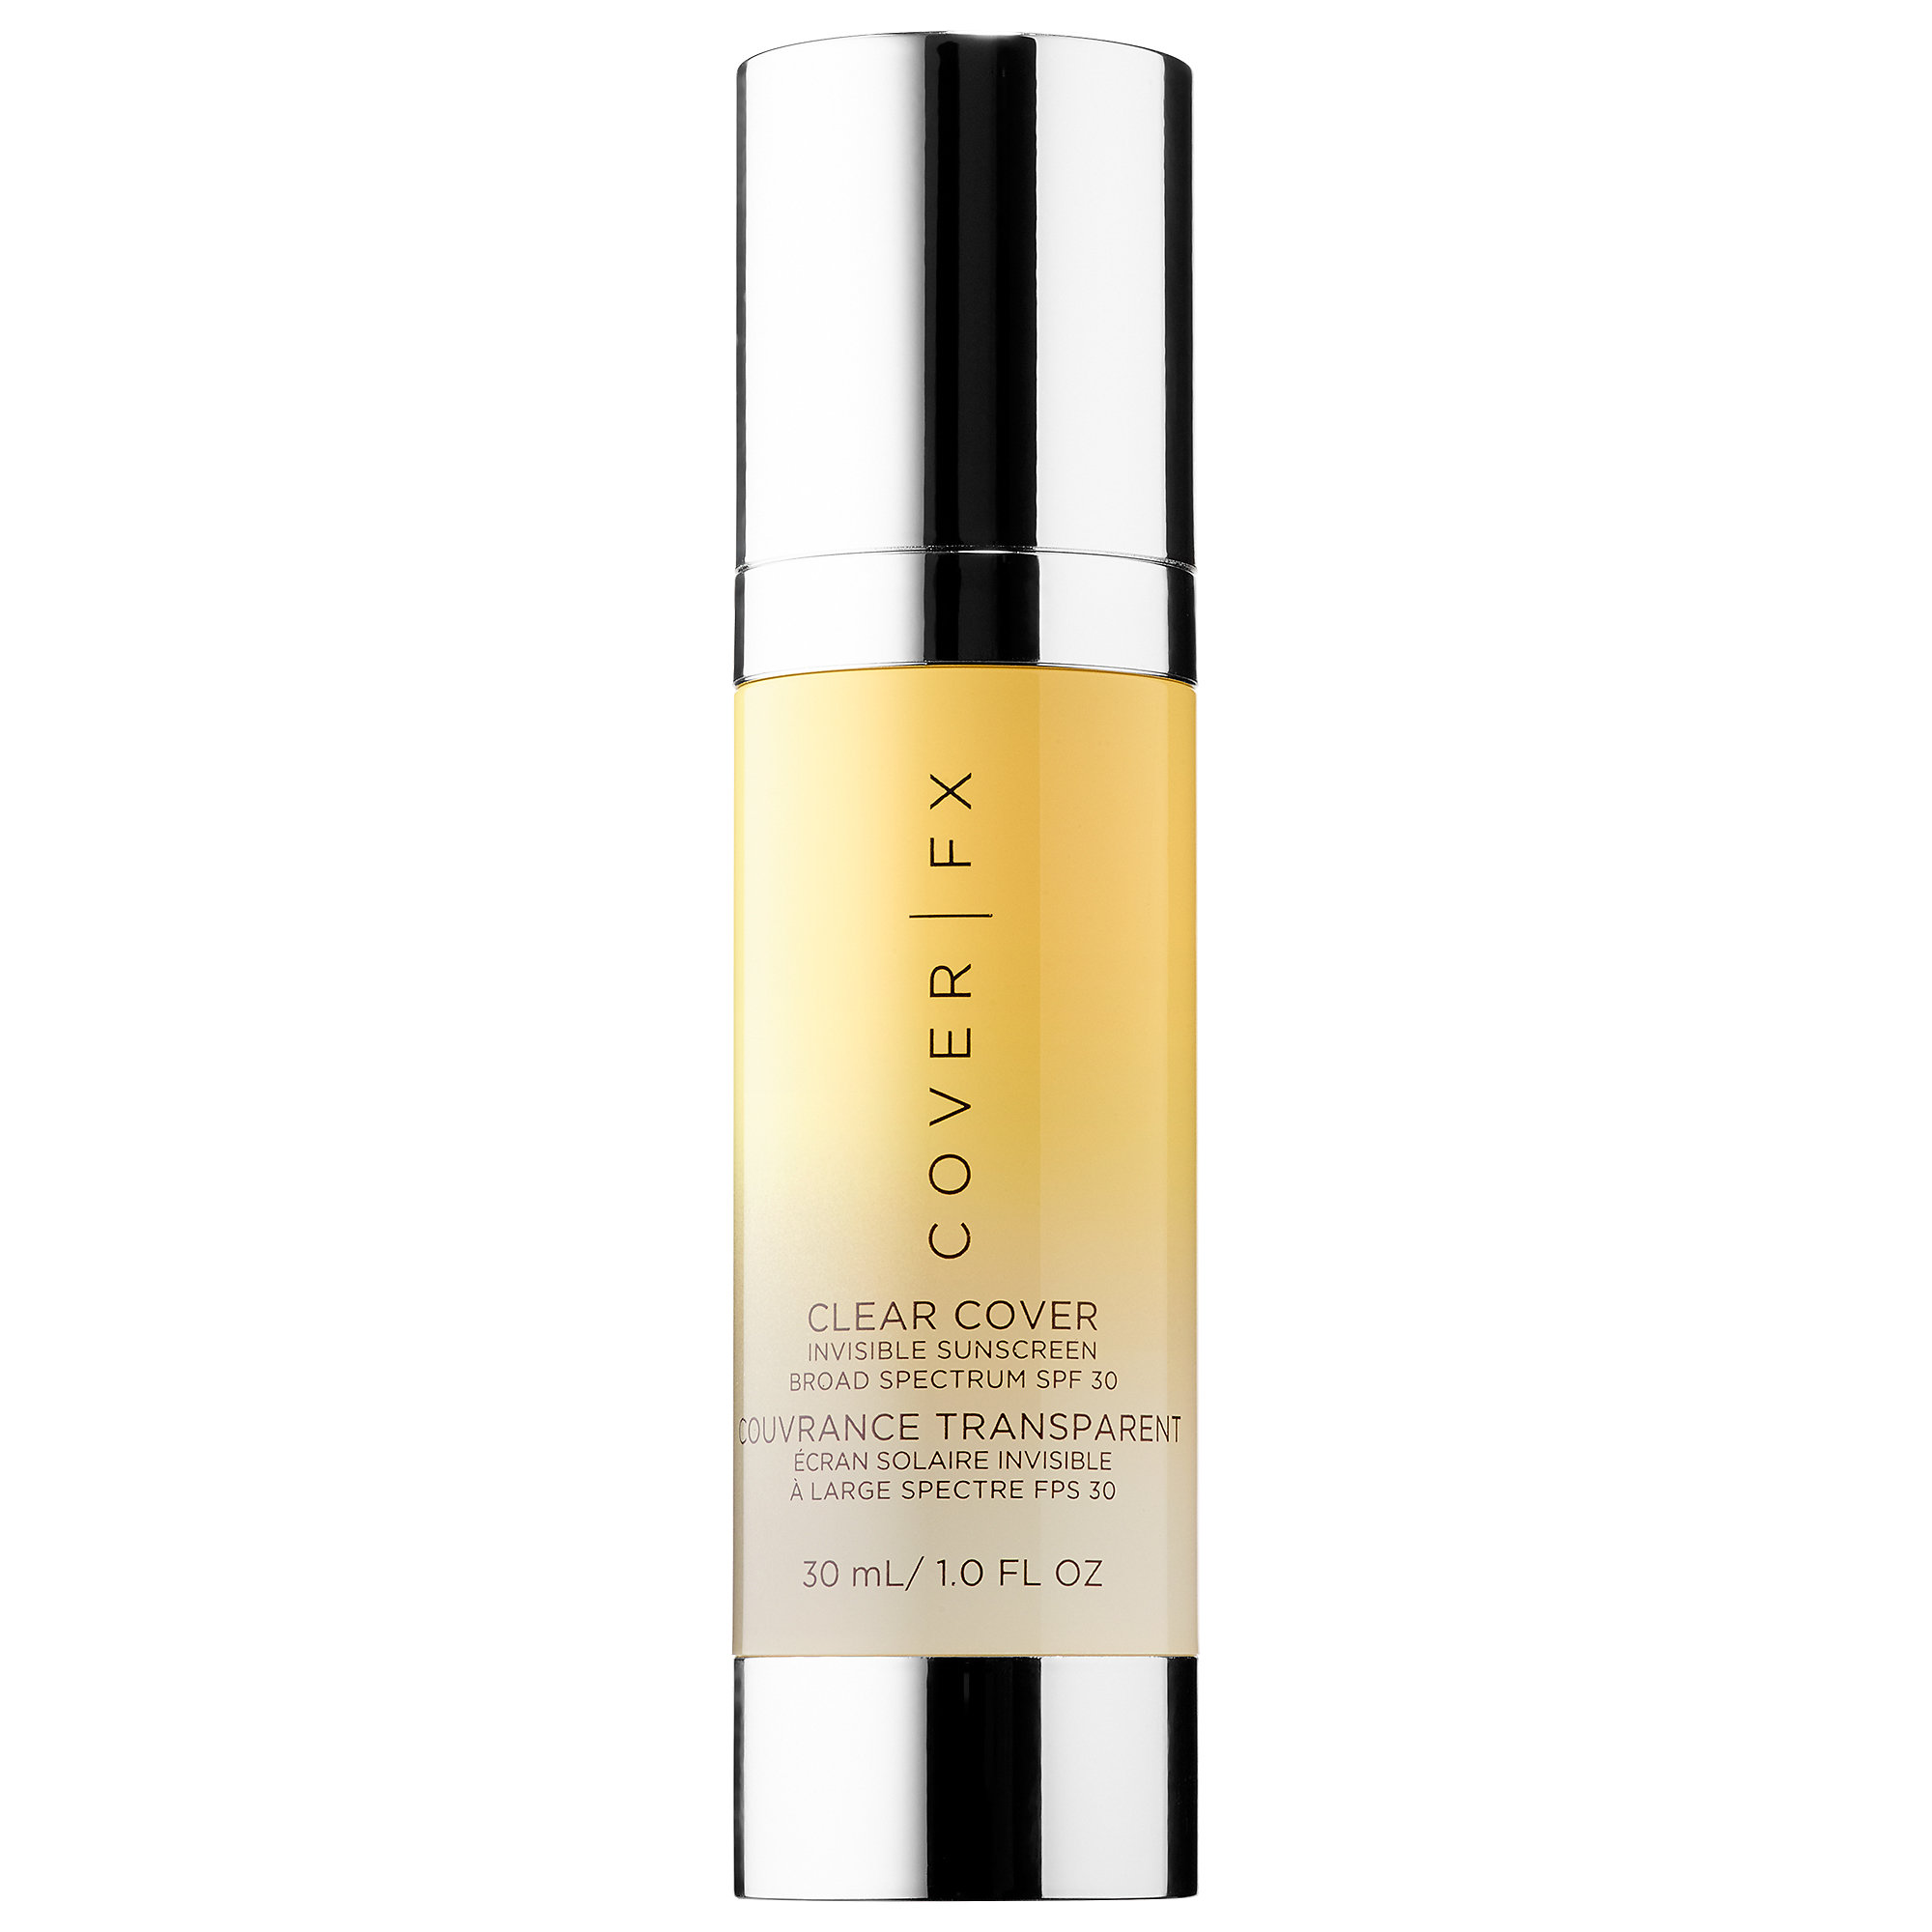 CoverFX Clear Cover SPF 30